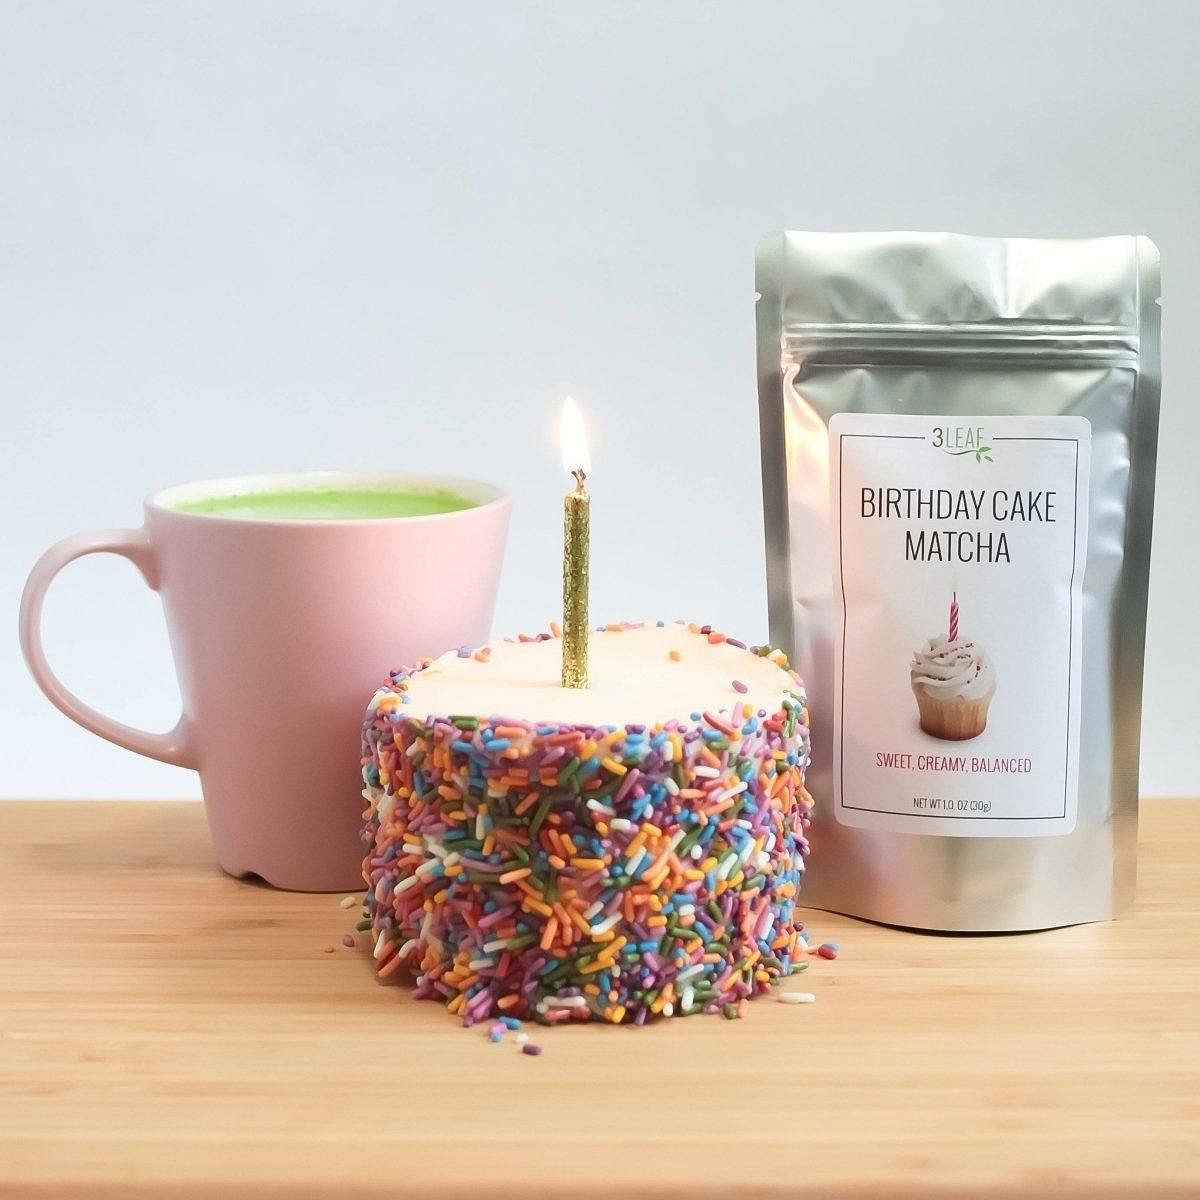 Birthday Cake Matcha | 3 Leaf Tea | Flavored Japanese Green Tea